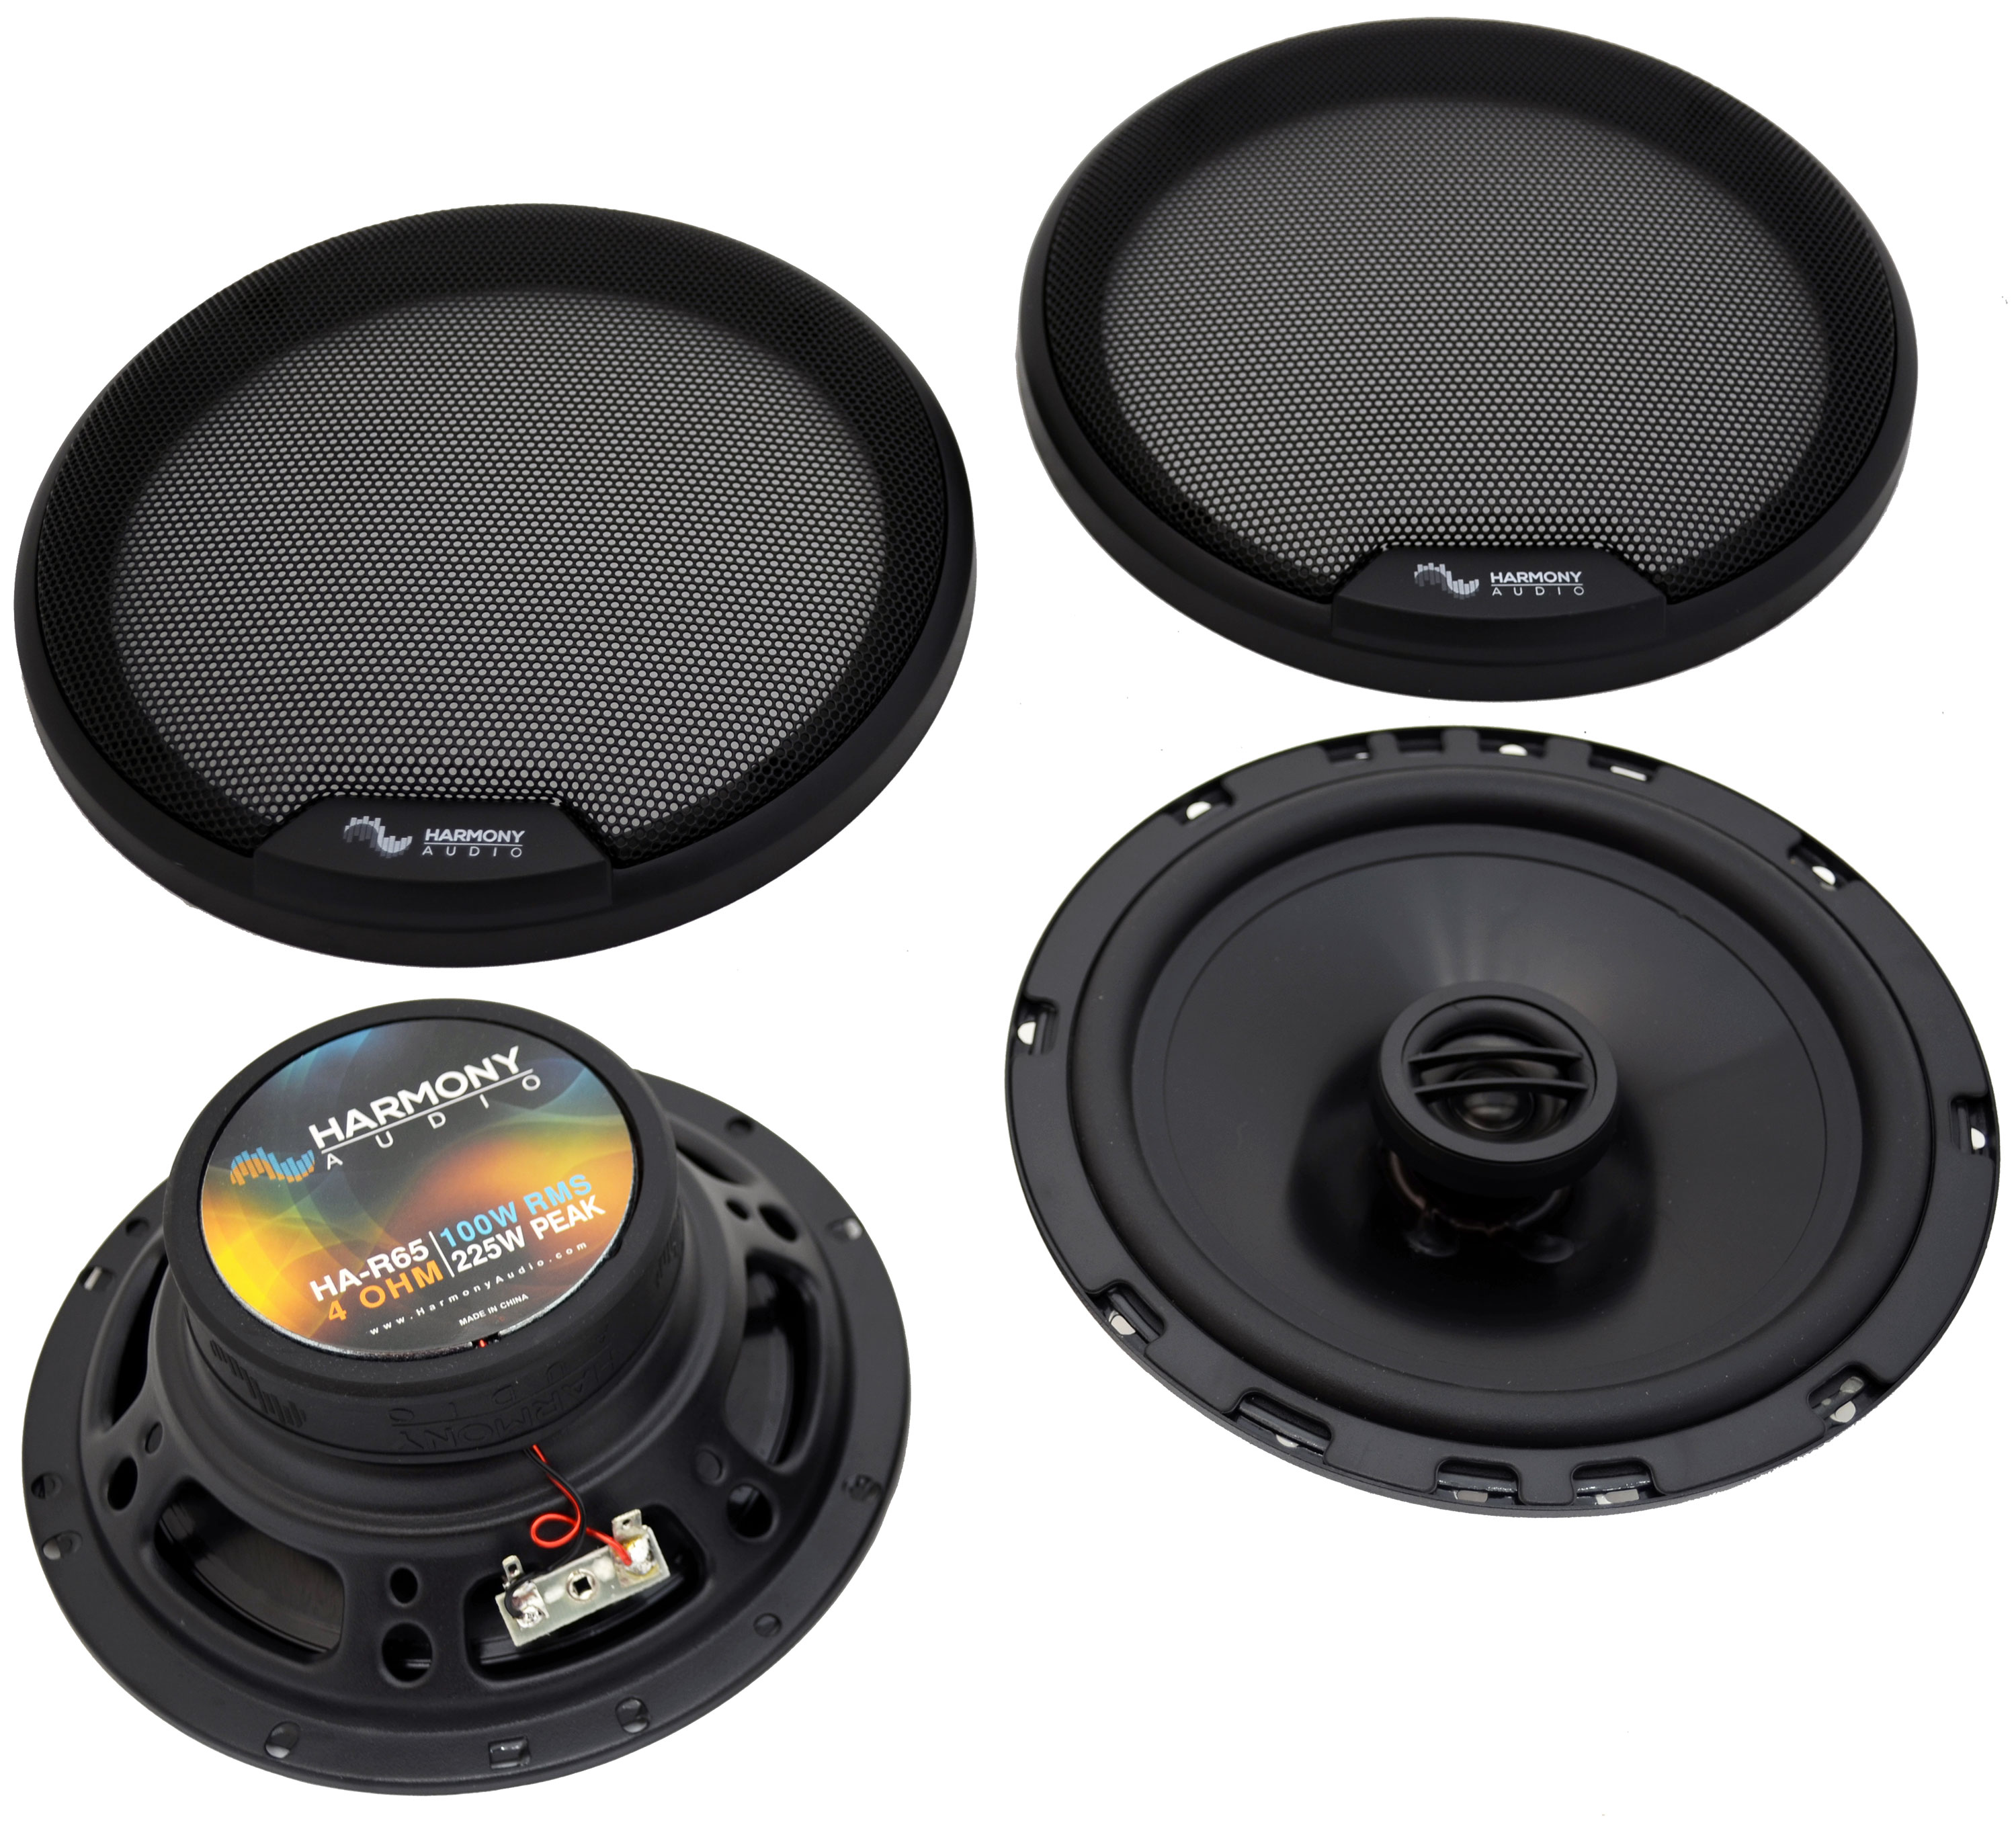 Fits Mercedes 190 Series 1984-1993 Rear Deck Replacement Harmony HA-R65 Speakers